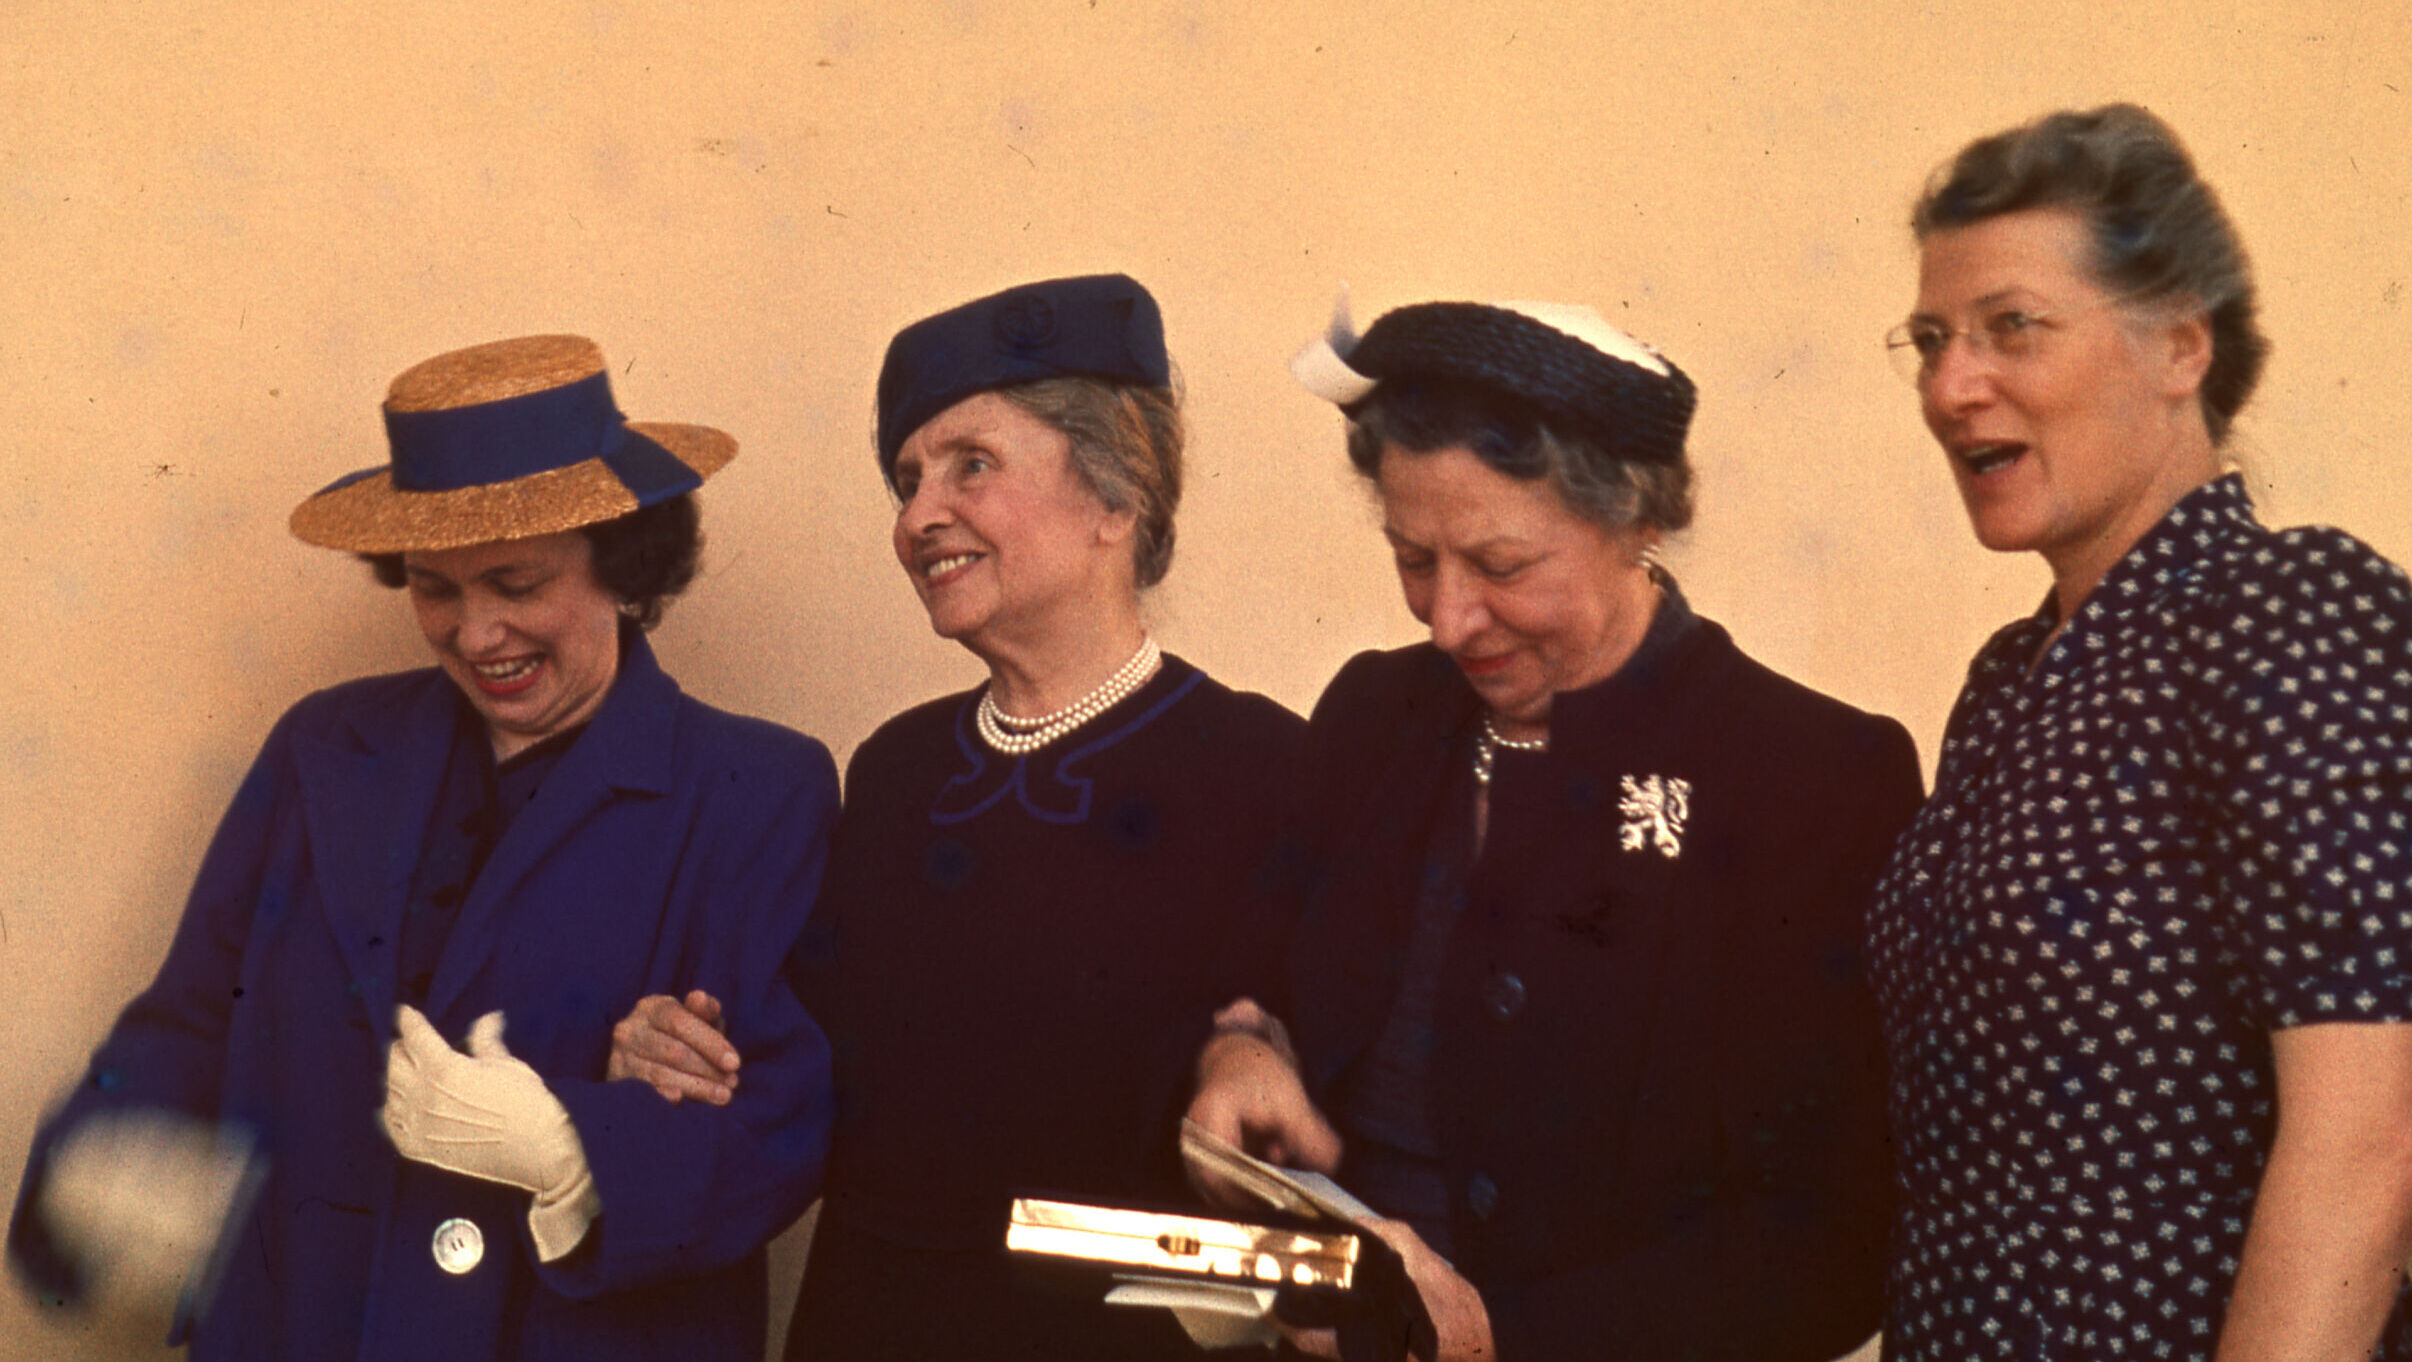 Four women stand side by side, three with linked arms. Three wear hats and formal dress; the one on far right does not have hat and appears more casually dressed.